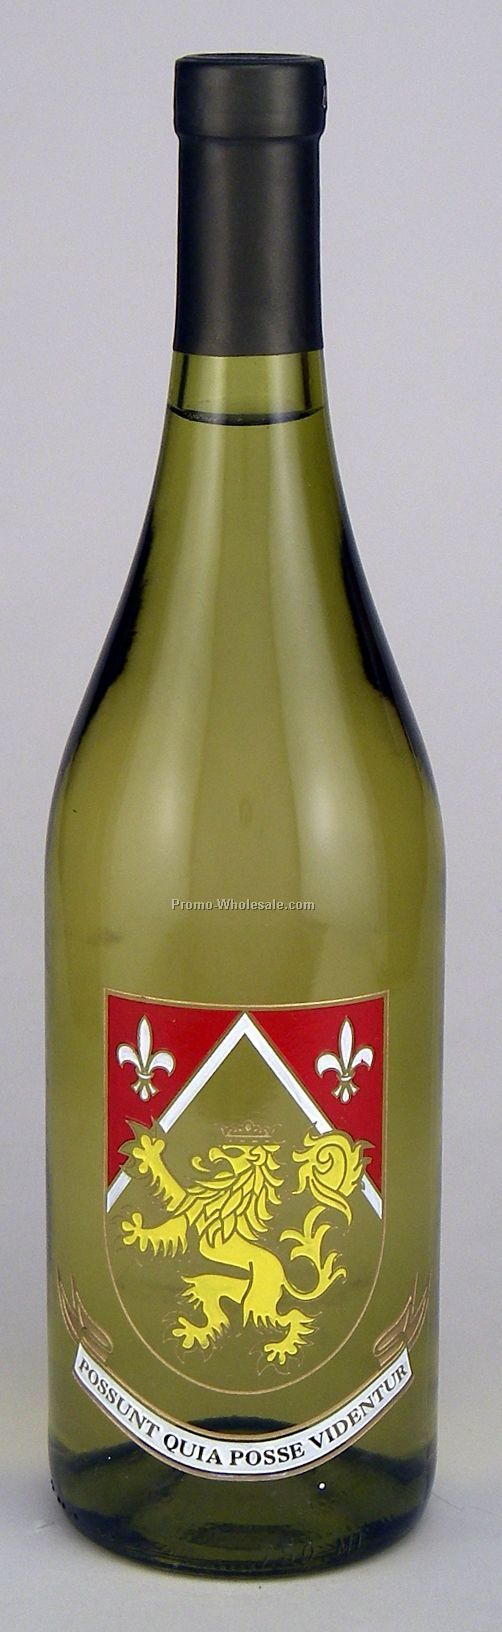 Chardonnay, California, 750 Ml, 1 Deep Hand-etch, 4 Paint Fills